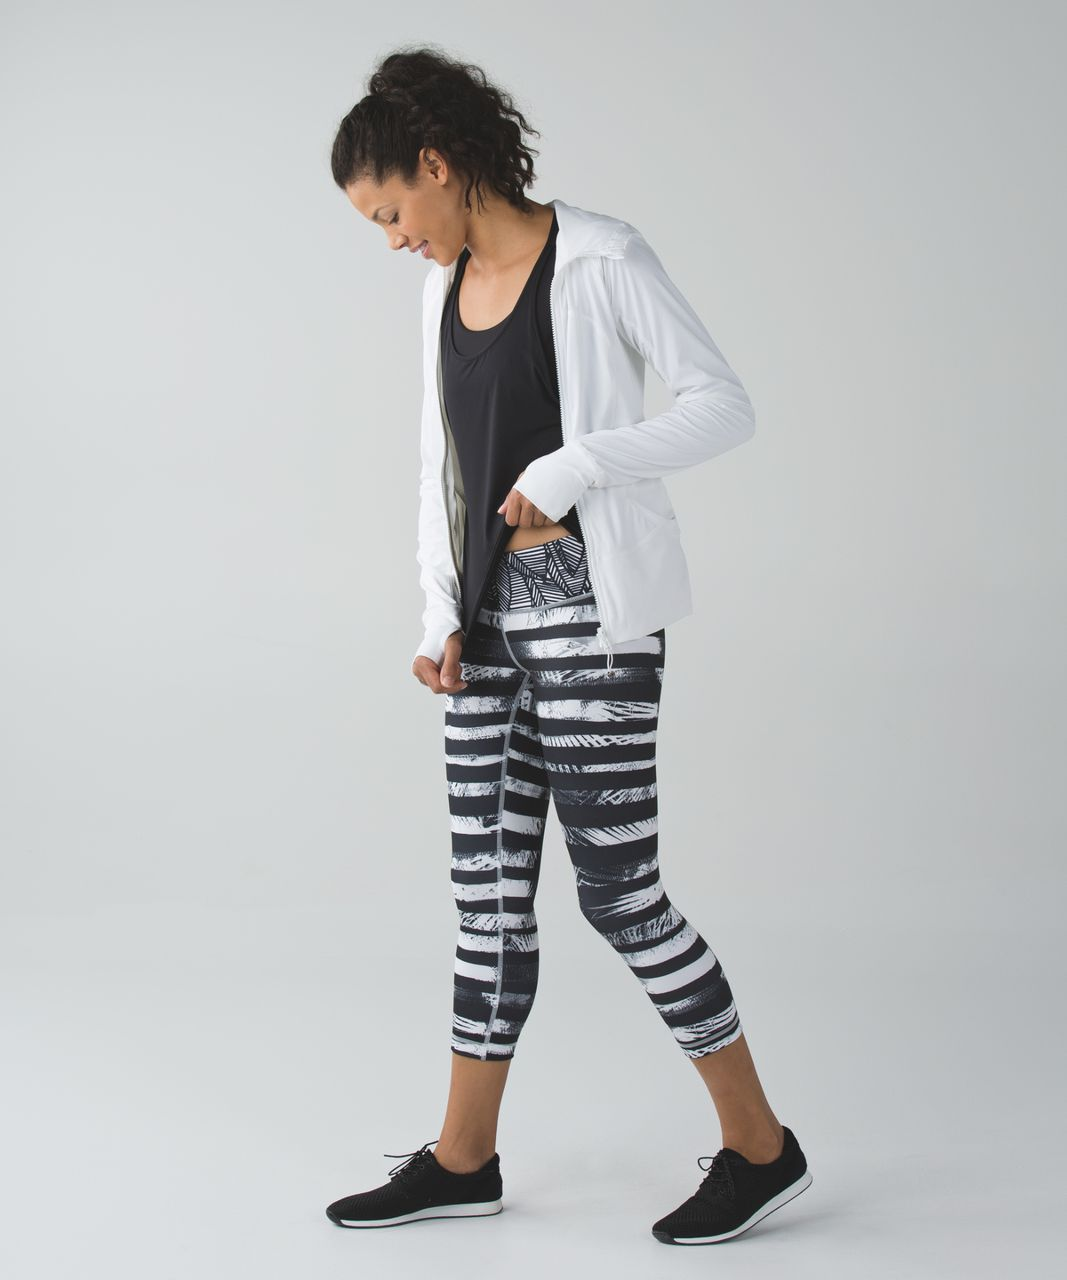 Lululemon Wunder Under Crop II *Full-On Luon - Shady Palms Black White / Banana Leaf White Black / Gingham Luon White Black